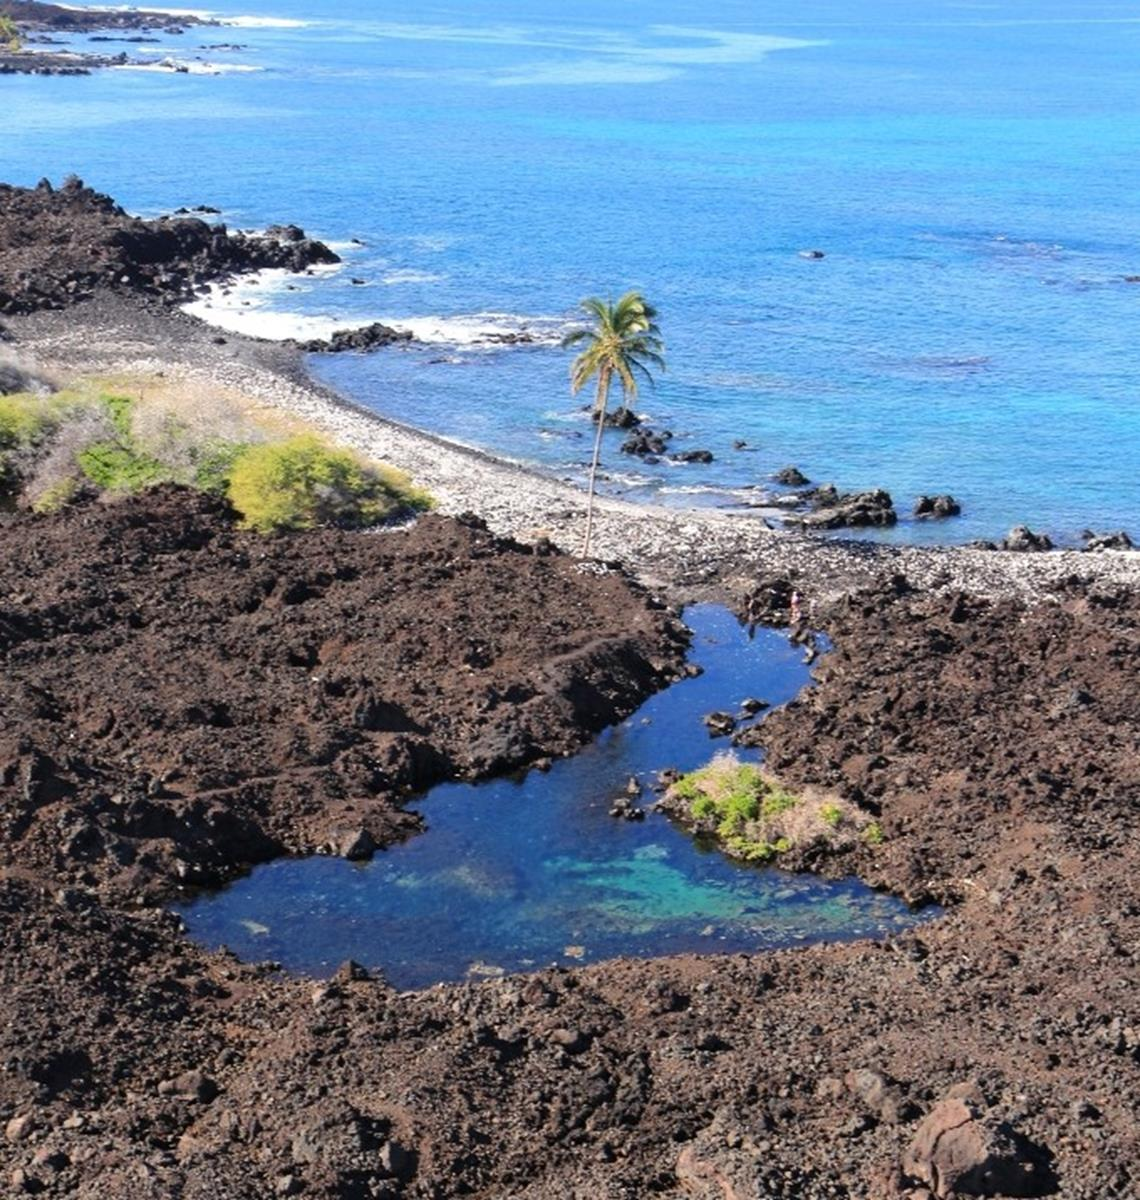 Big Island Beaches: A+ Experiences Await For A Student Trip To Hawaii